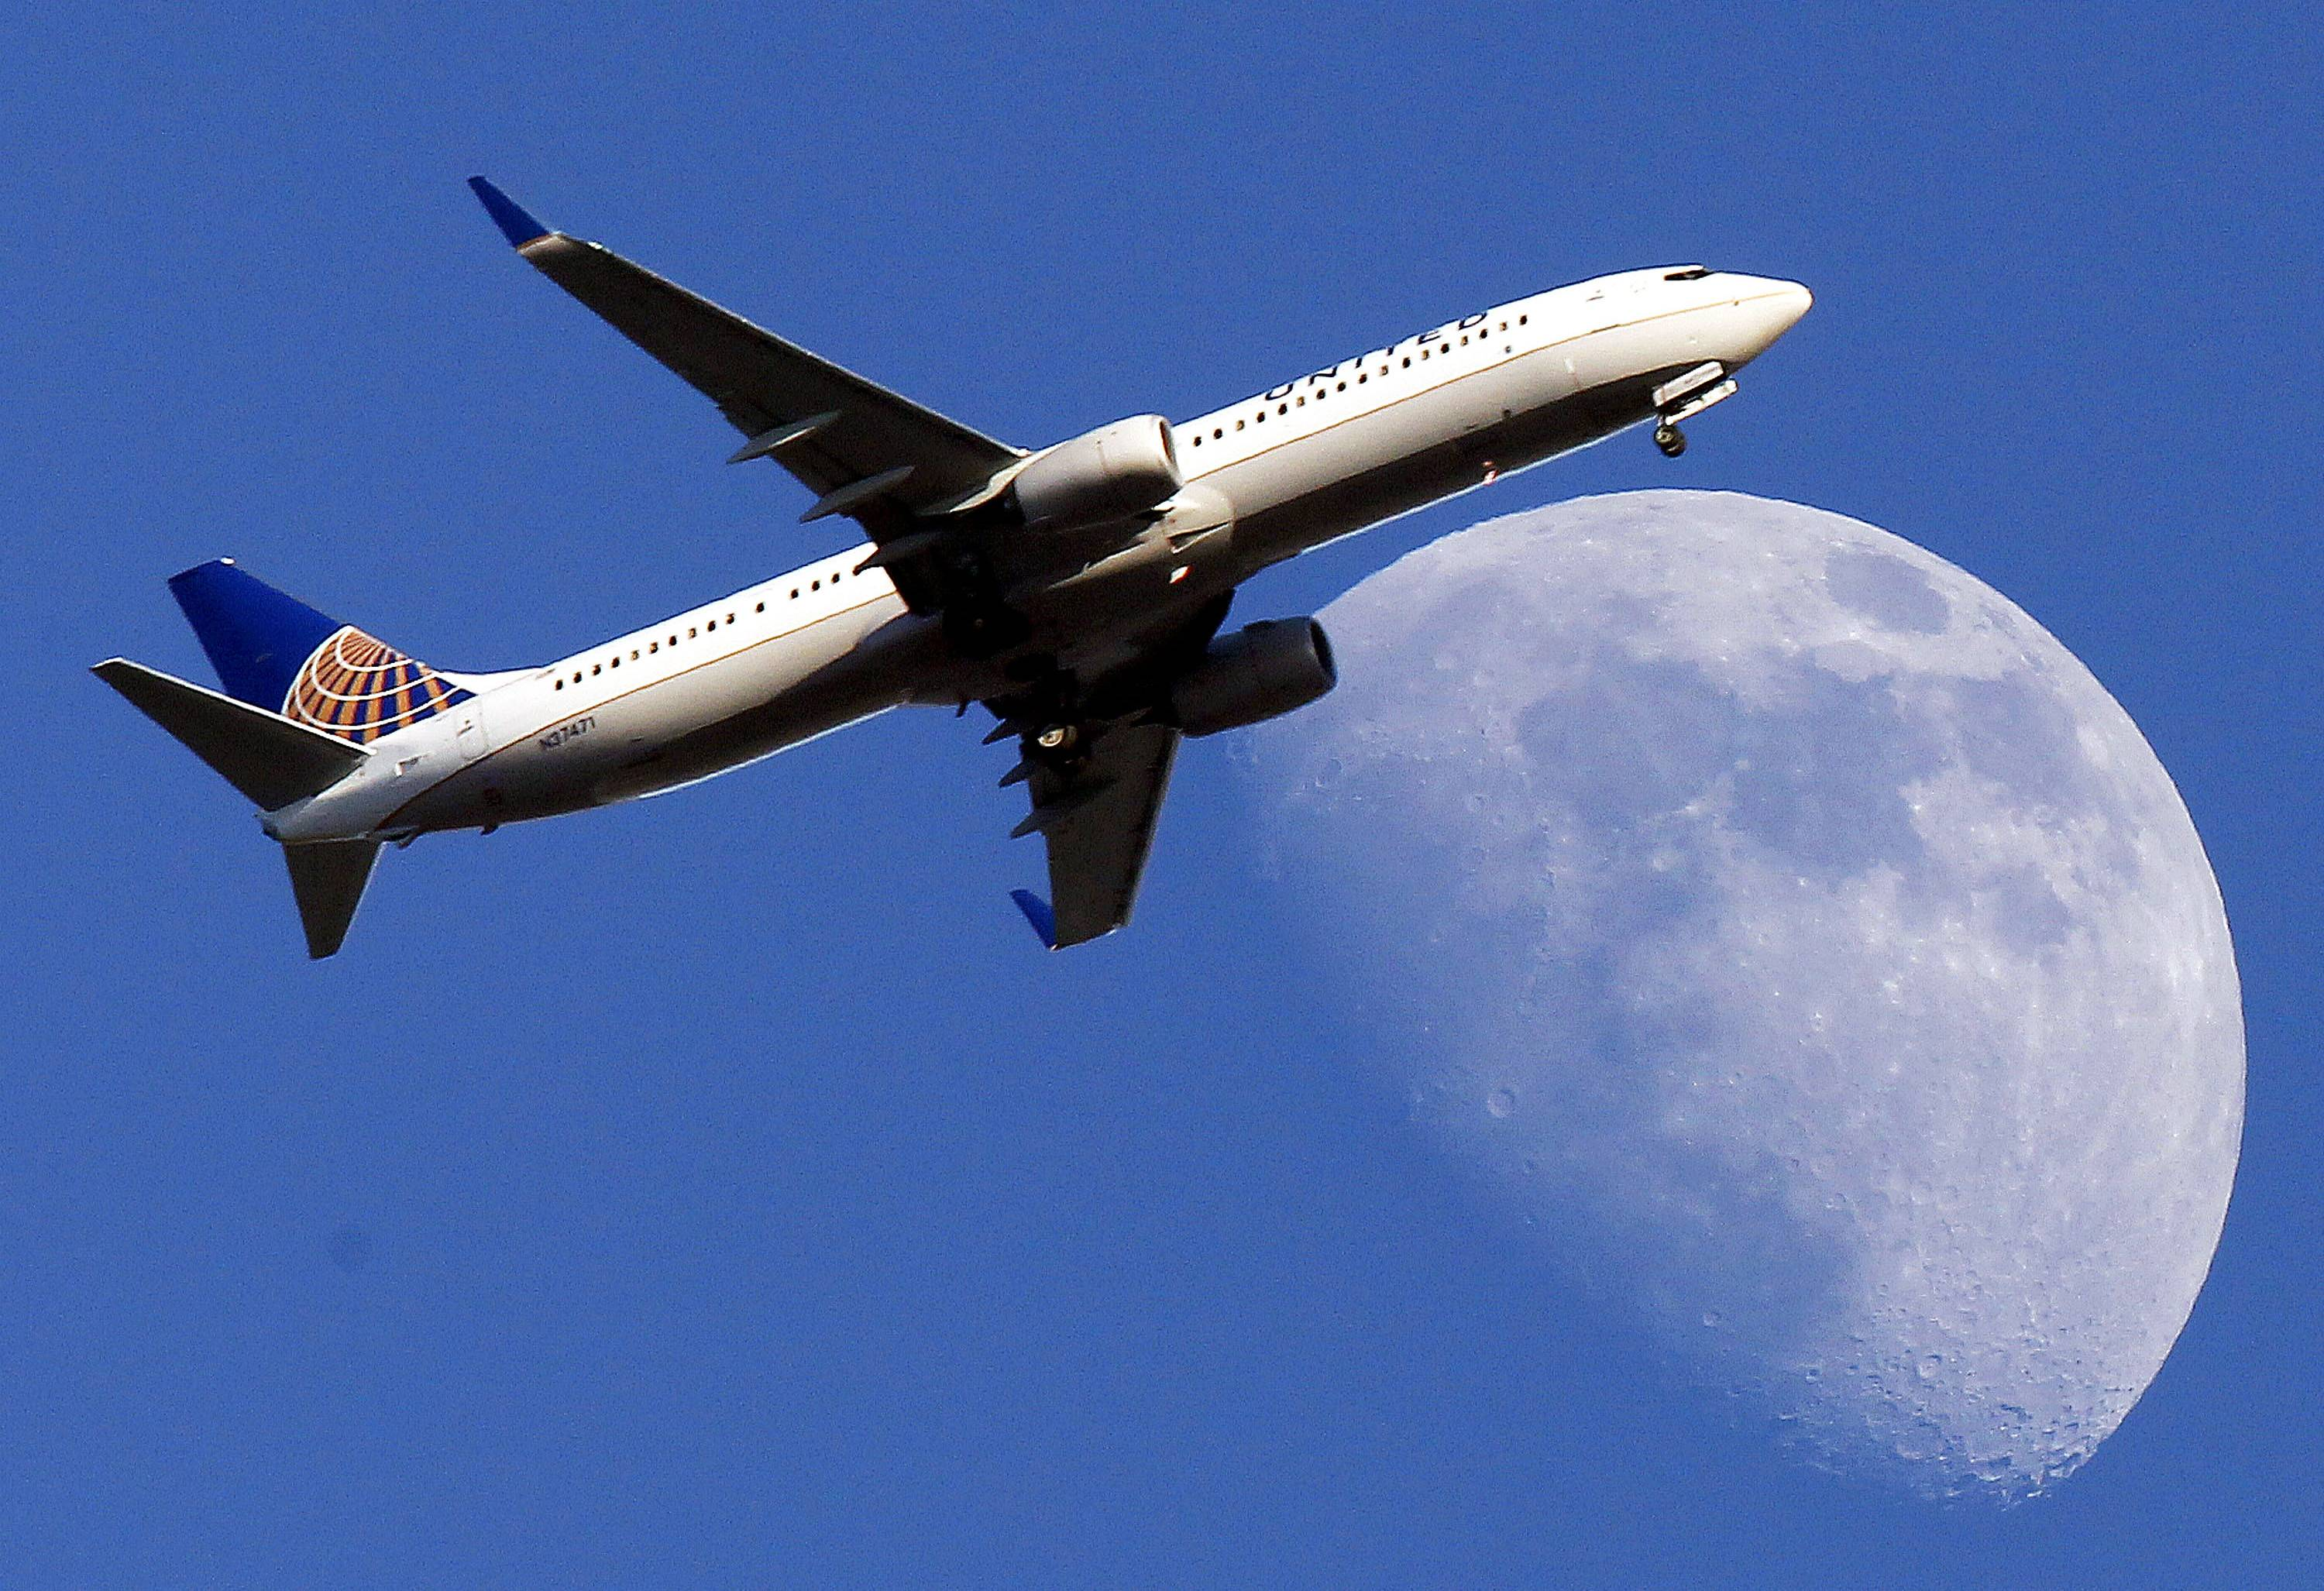 A United Airlines jet approaching Los Angeles International Airport passes in front of a Waxing Gibbous moon.